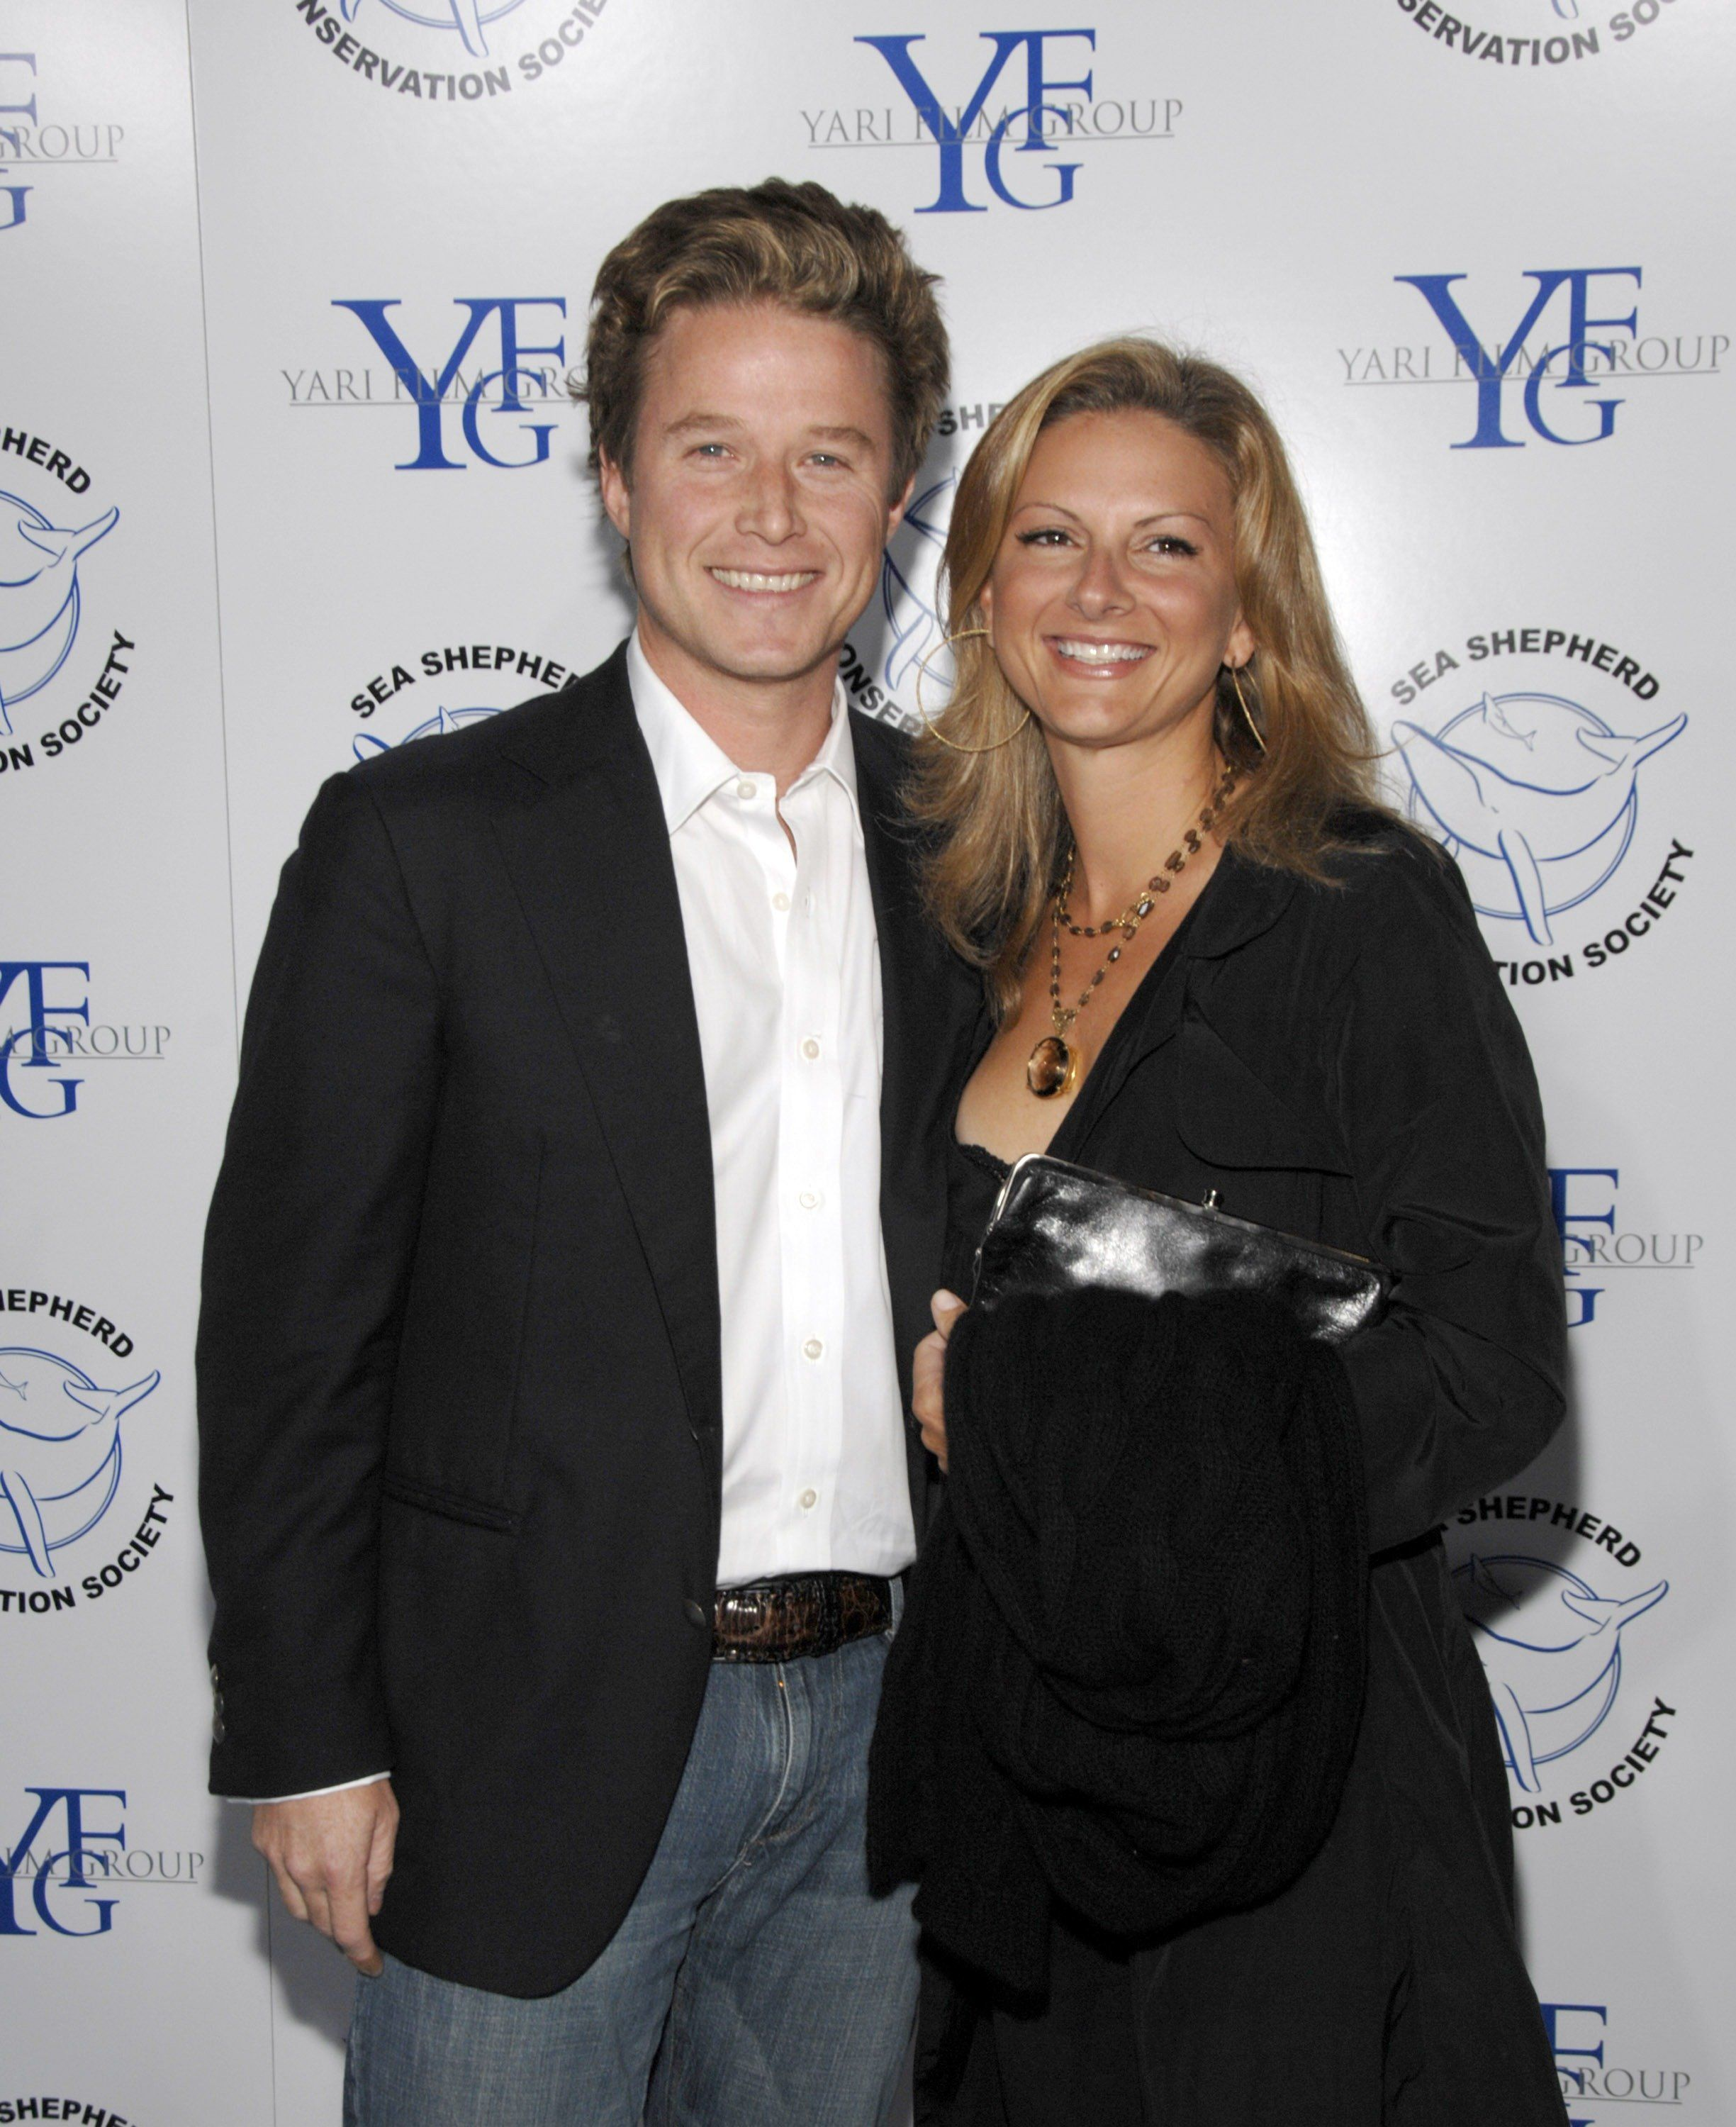 SANTA MONICA, CA -OCTOBER 13:  Billy Bush and Sydney Bush attend 'Breaking The Ice' A Fundraiser to benefit The Sea Shepherd Conservation Society on October 13, 2007 in Santa Monica, California. (Photo by John M. Heller/Getty Images)